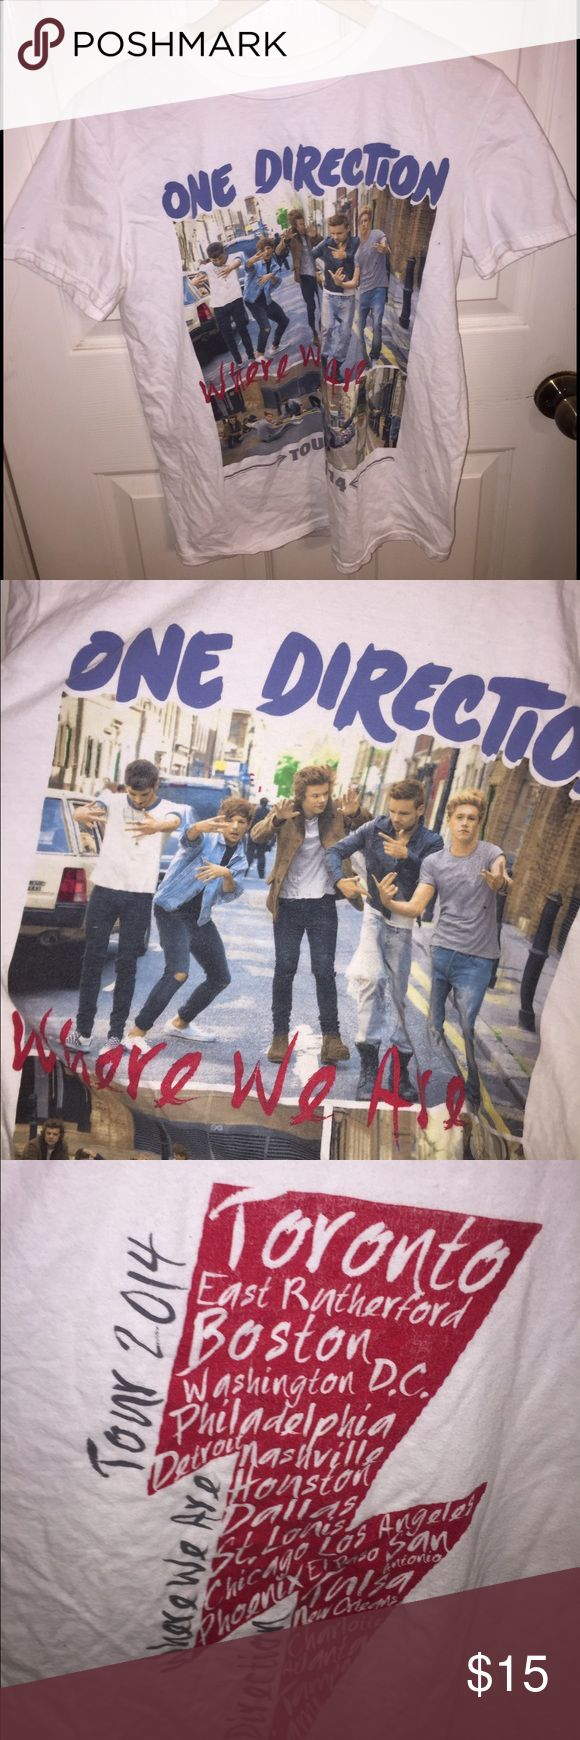 1D One Direction 2014 where we are tour tee Bought it in Glendale, AZ when they were here sept 2014 Tops Tees - Short Sleeve